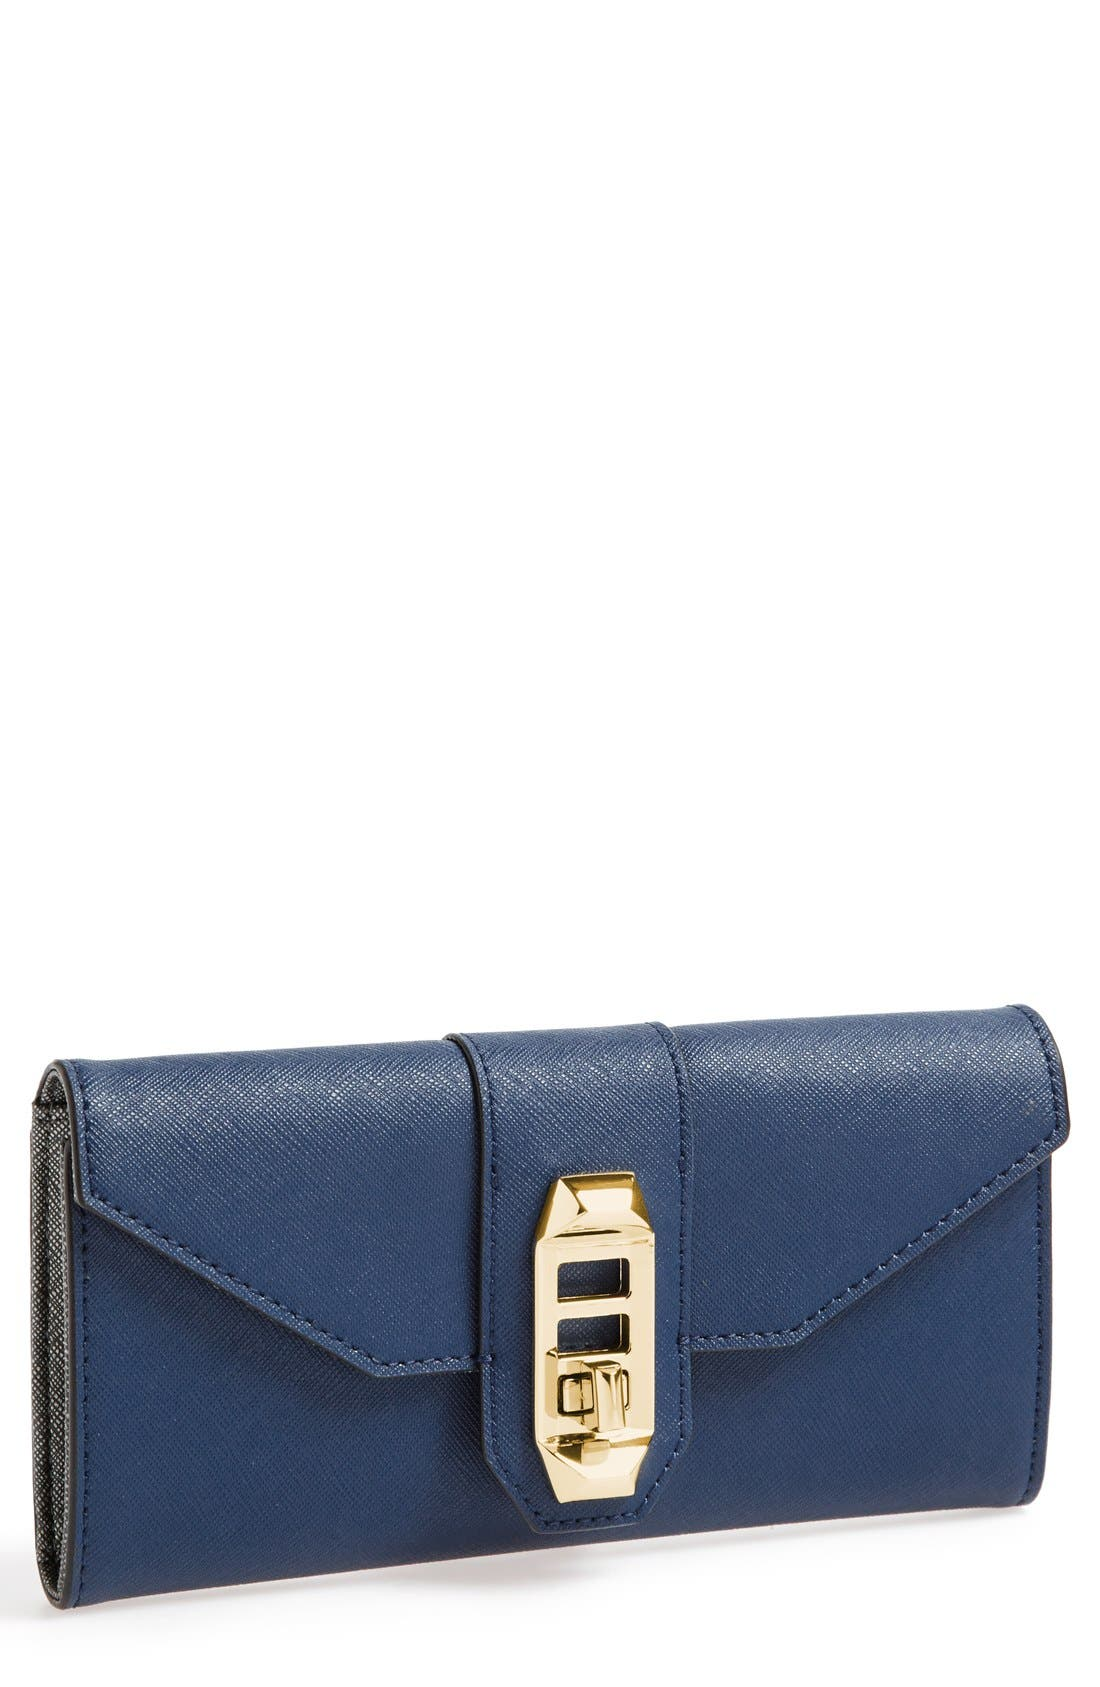 Main Image - Rebecca Minkoff 'Mason' Turnlock Wallet